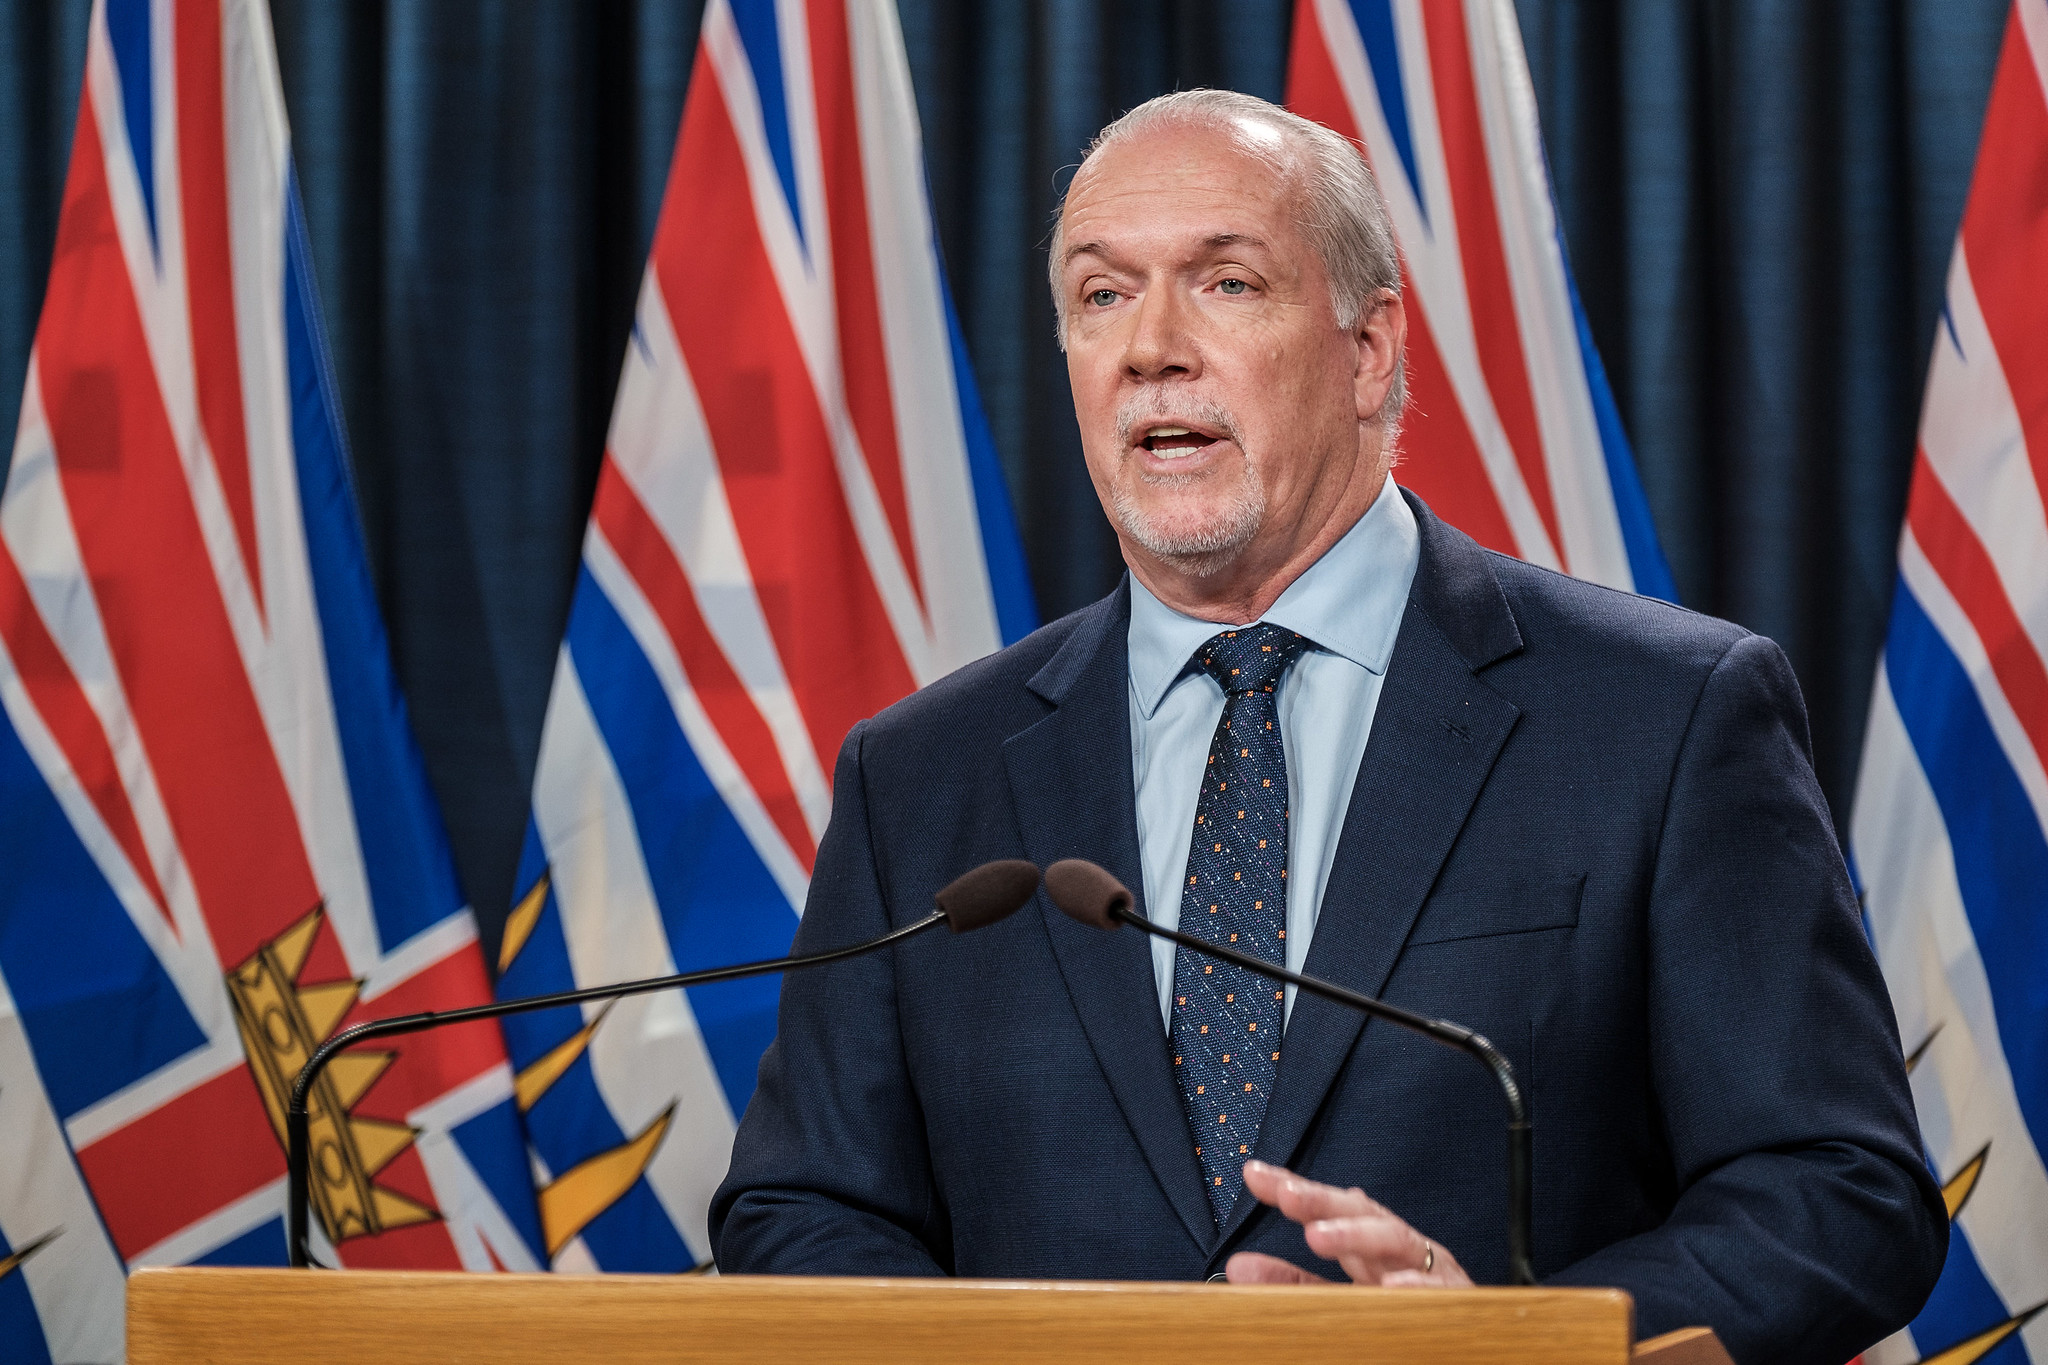 B.C. hiring 500 people to help with COVID contact tracing